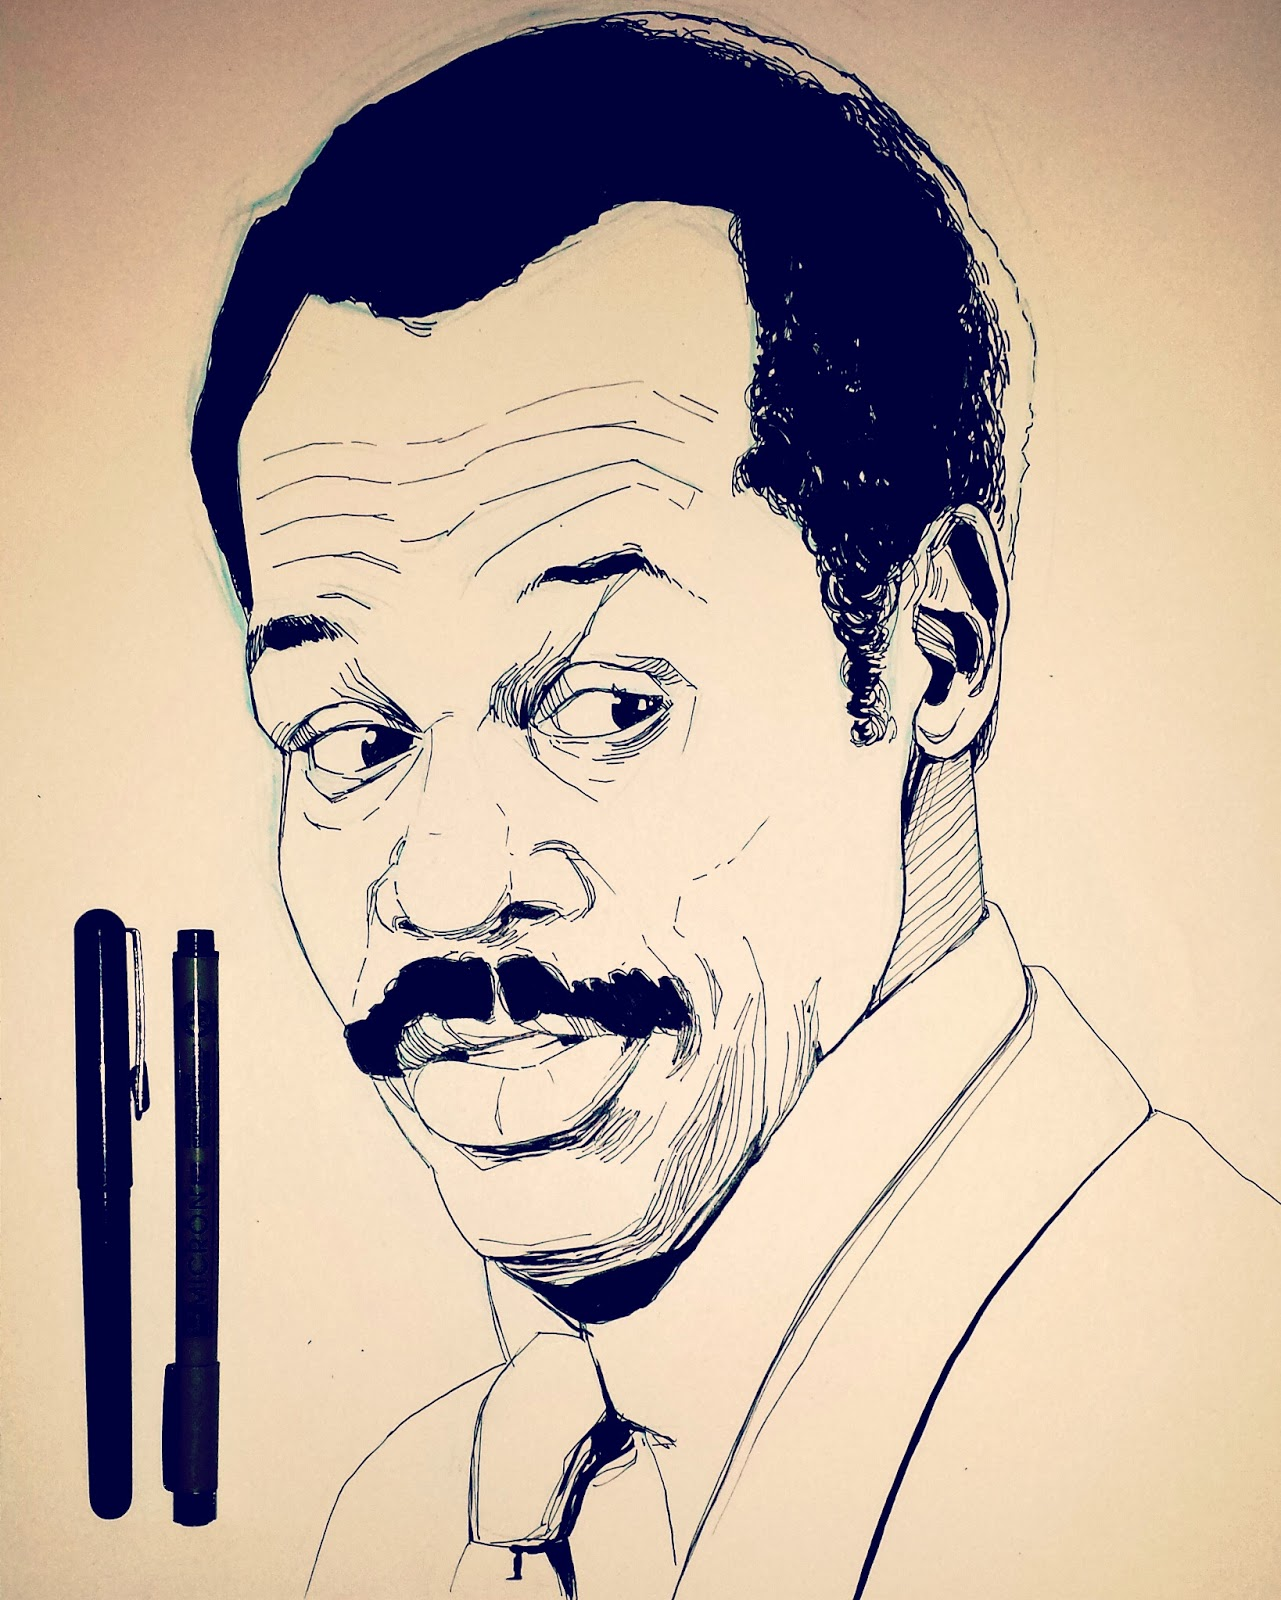 Lethal Weapon Danny Glover drawing